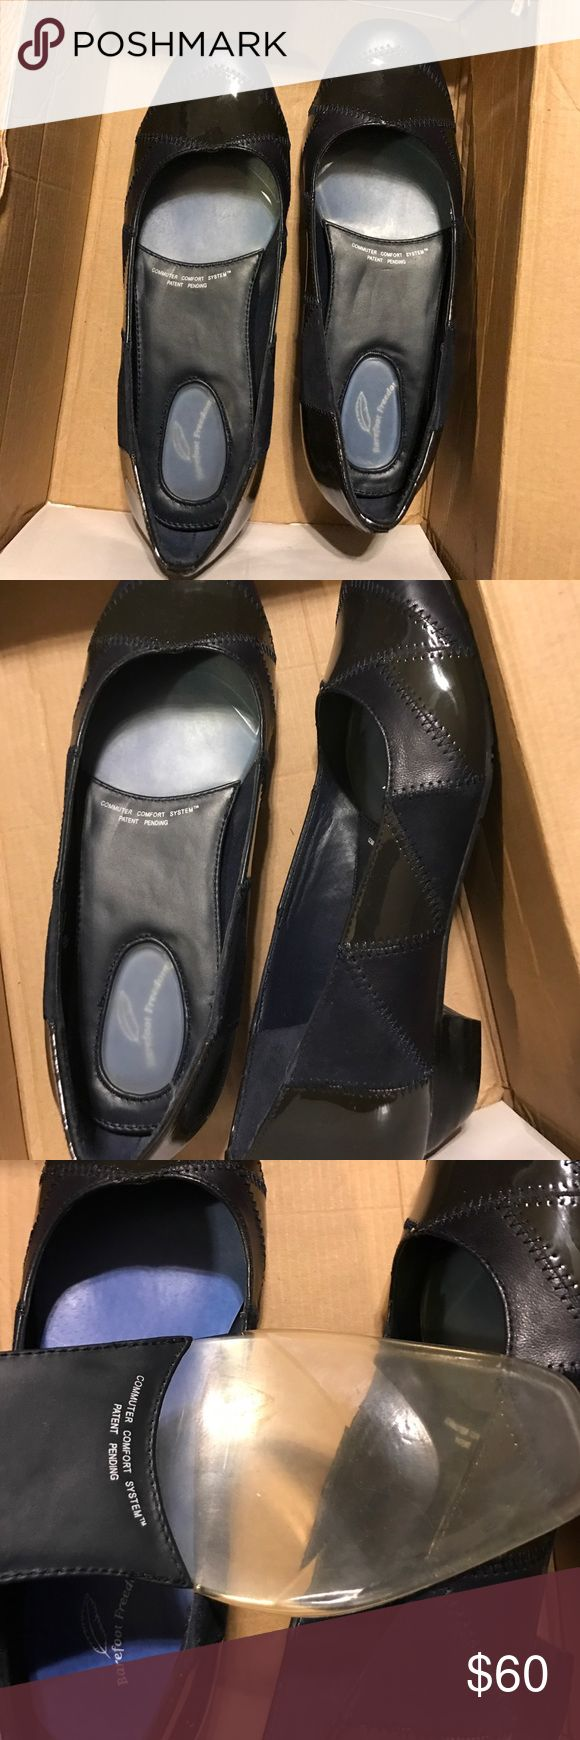 Ladies Navy Barefoot Freedom by Drew  sz 5.5W/37 Ladies Navy Barefoot Freedom by Drew. They are new. Navy blue leather size 5.5W / 37.   Smoke free home but pet friendly.  No returns. Don't like my price make an offer. Thanks for looking barefoot freedom By Drew Shoes Flats & Loafers